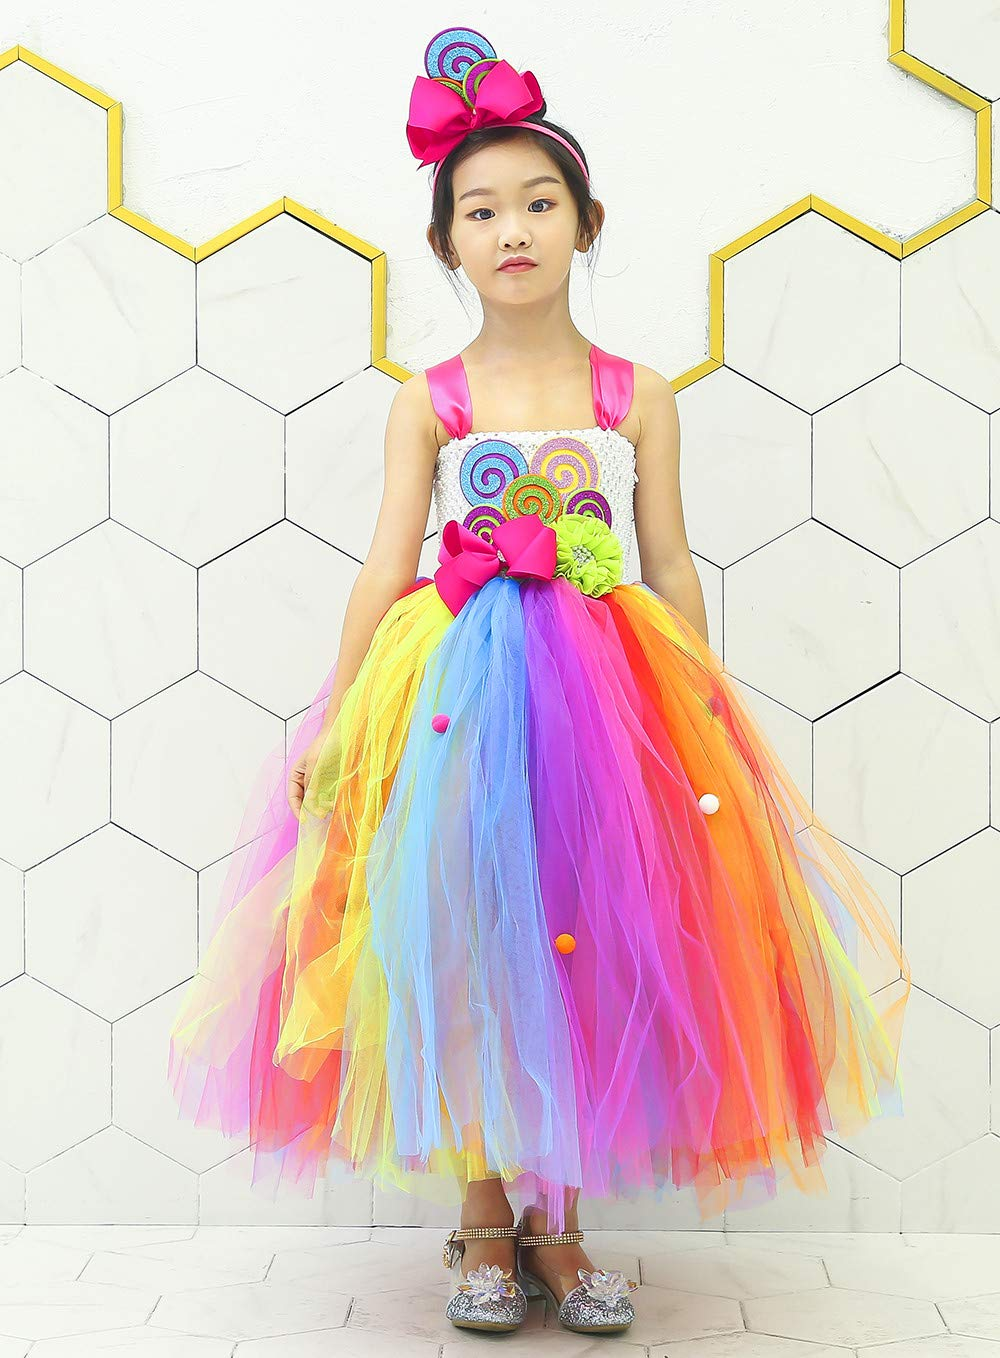 Tutu Dreams Rainbow Lollipop Candy Tutu Dress Kids Girls Birthday Party Ringmaster Circus Clown Costumes Halloween (Rainbow, 8) by Tutu Dreams (Image #4)